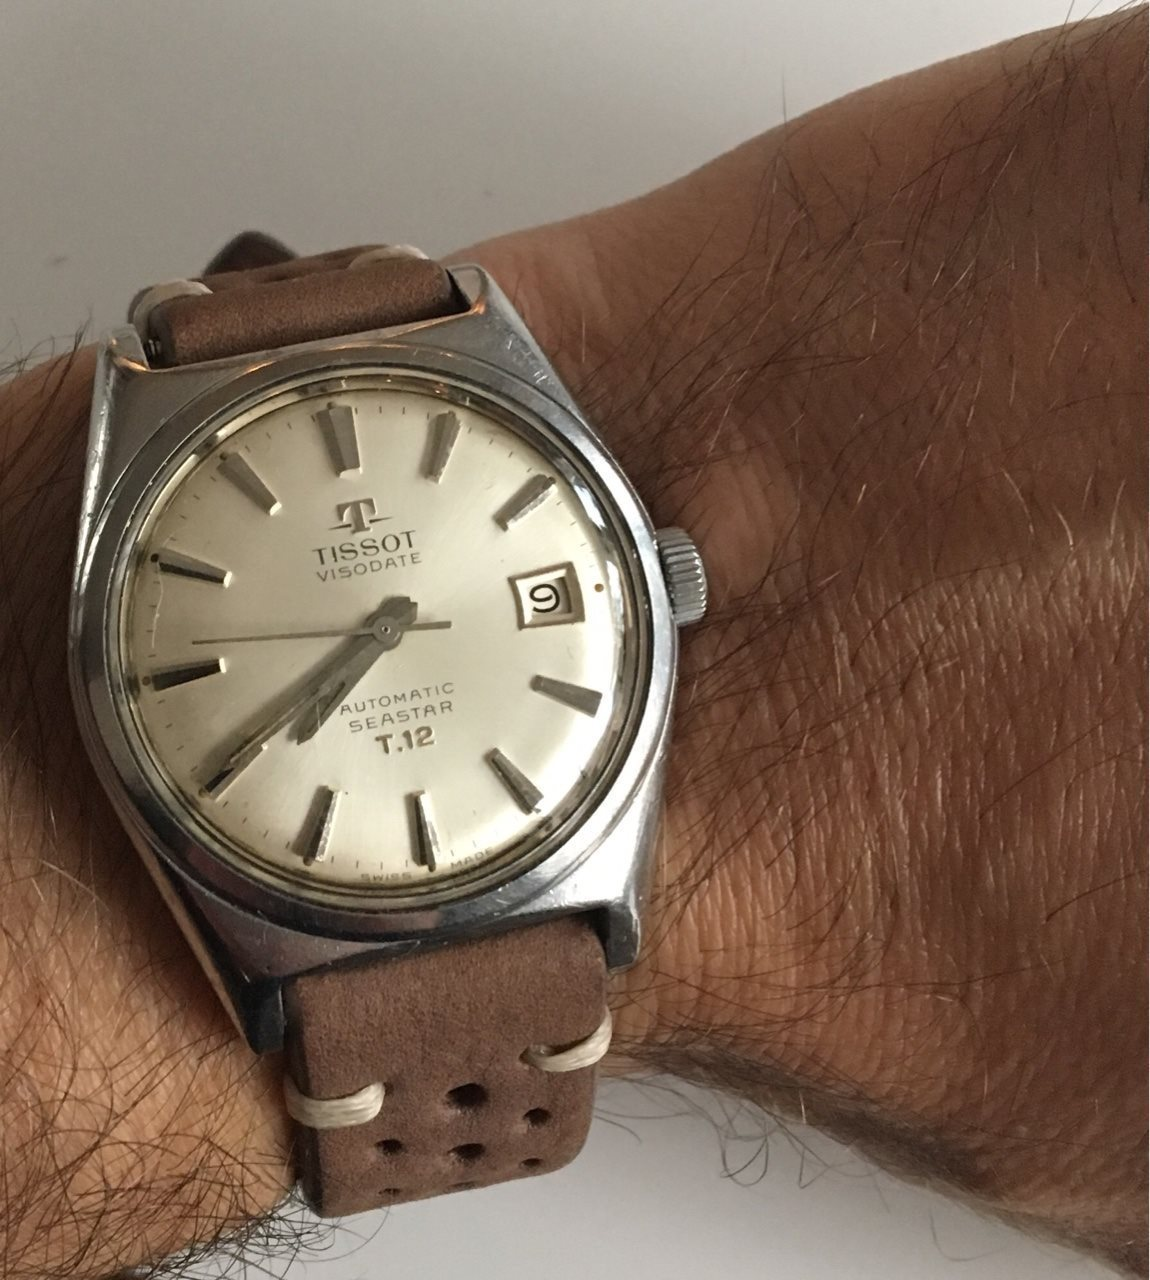 7c38061dd A bit confused about this 1960s Tissot Seastar T.12